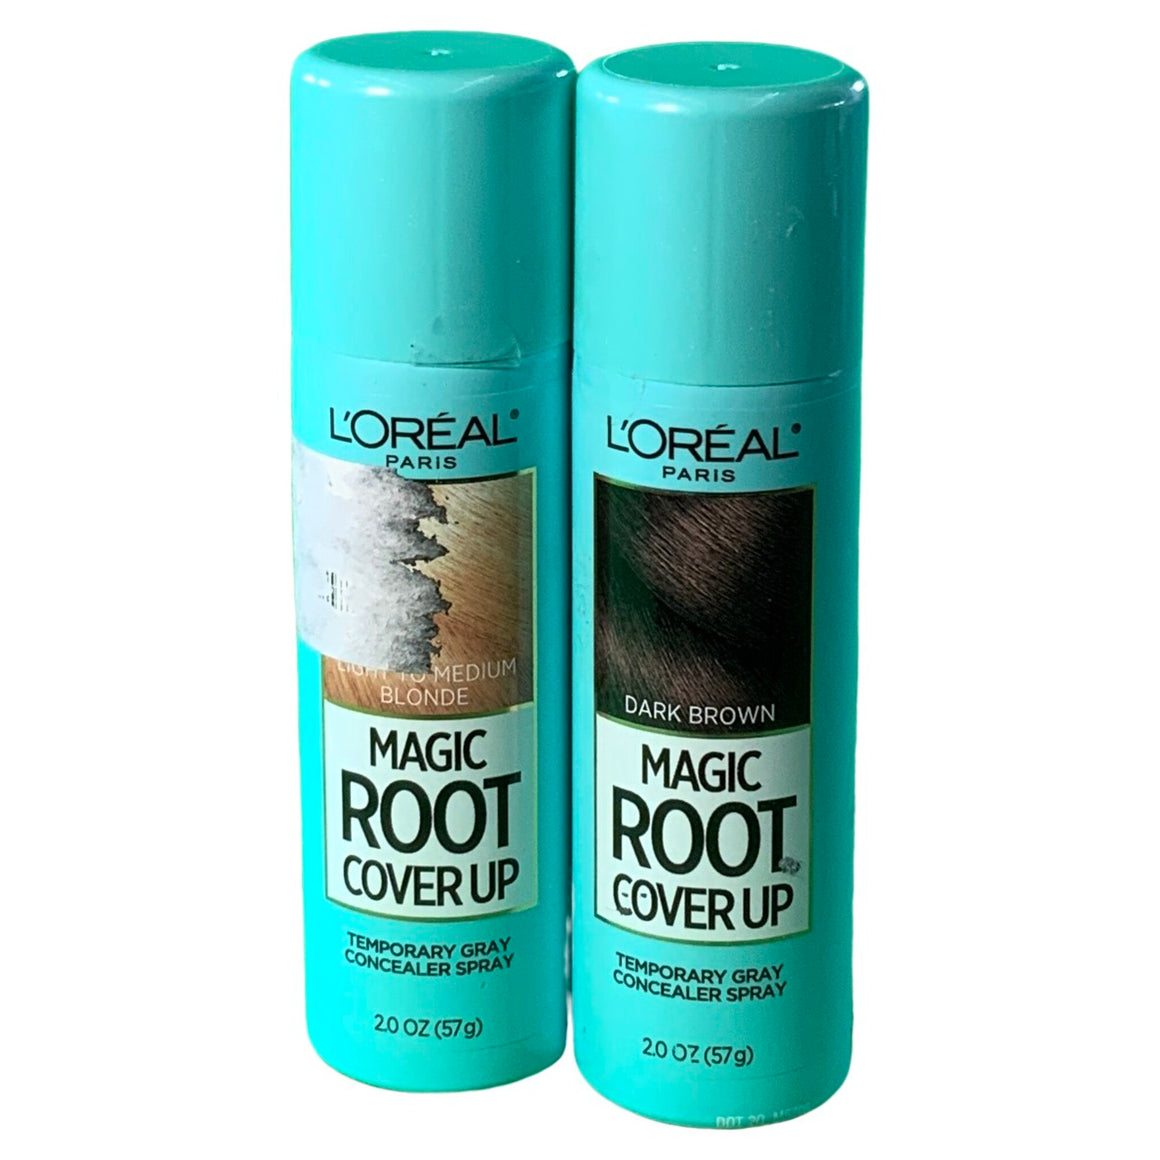 Magic Root Cover Up Gray Concealer Spray - 2.0Oz & Root Cover Up Temporary Gray Concealer Spray Dark Brown - L'Oreal Paris